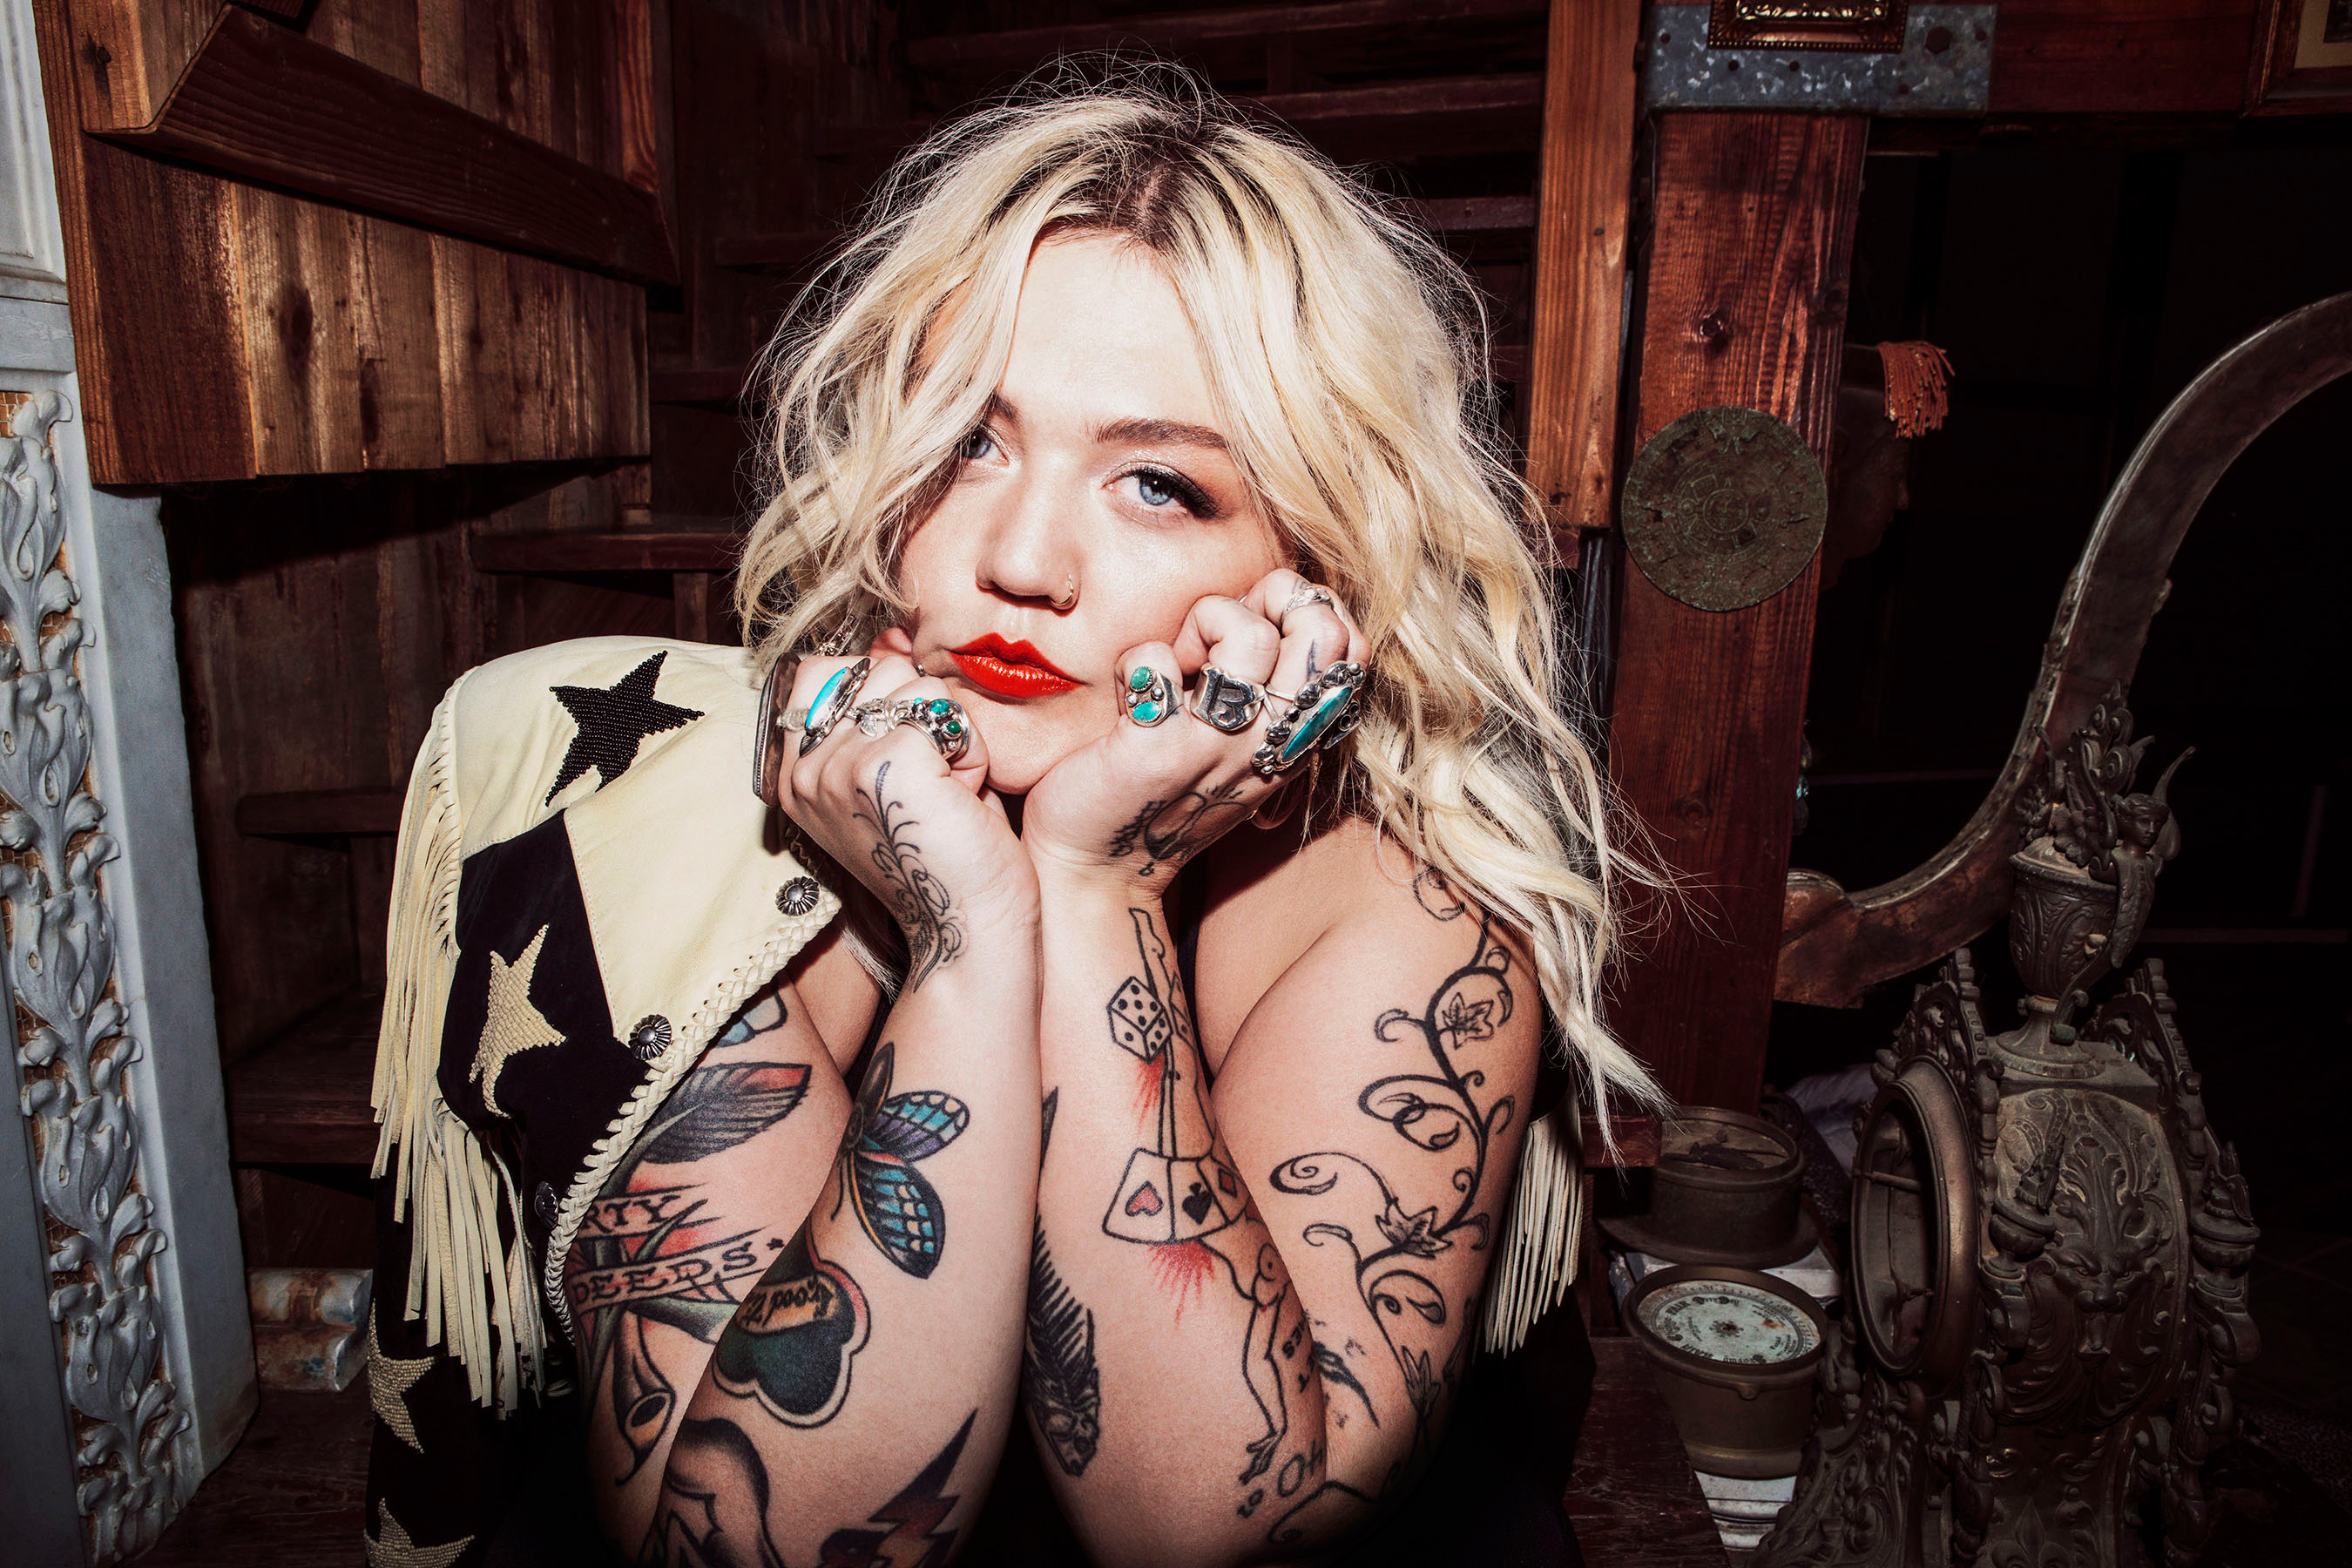 Elle King Ethnicity, Race, and Nationality